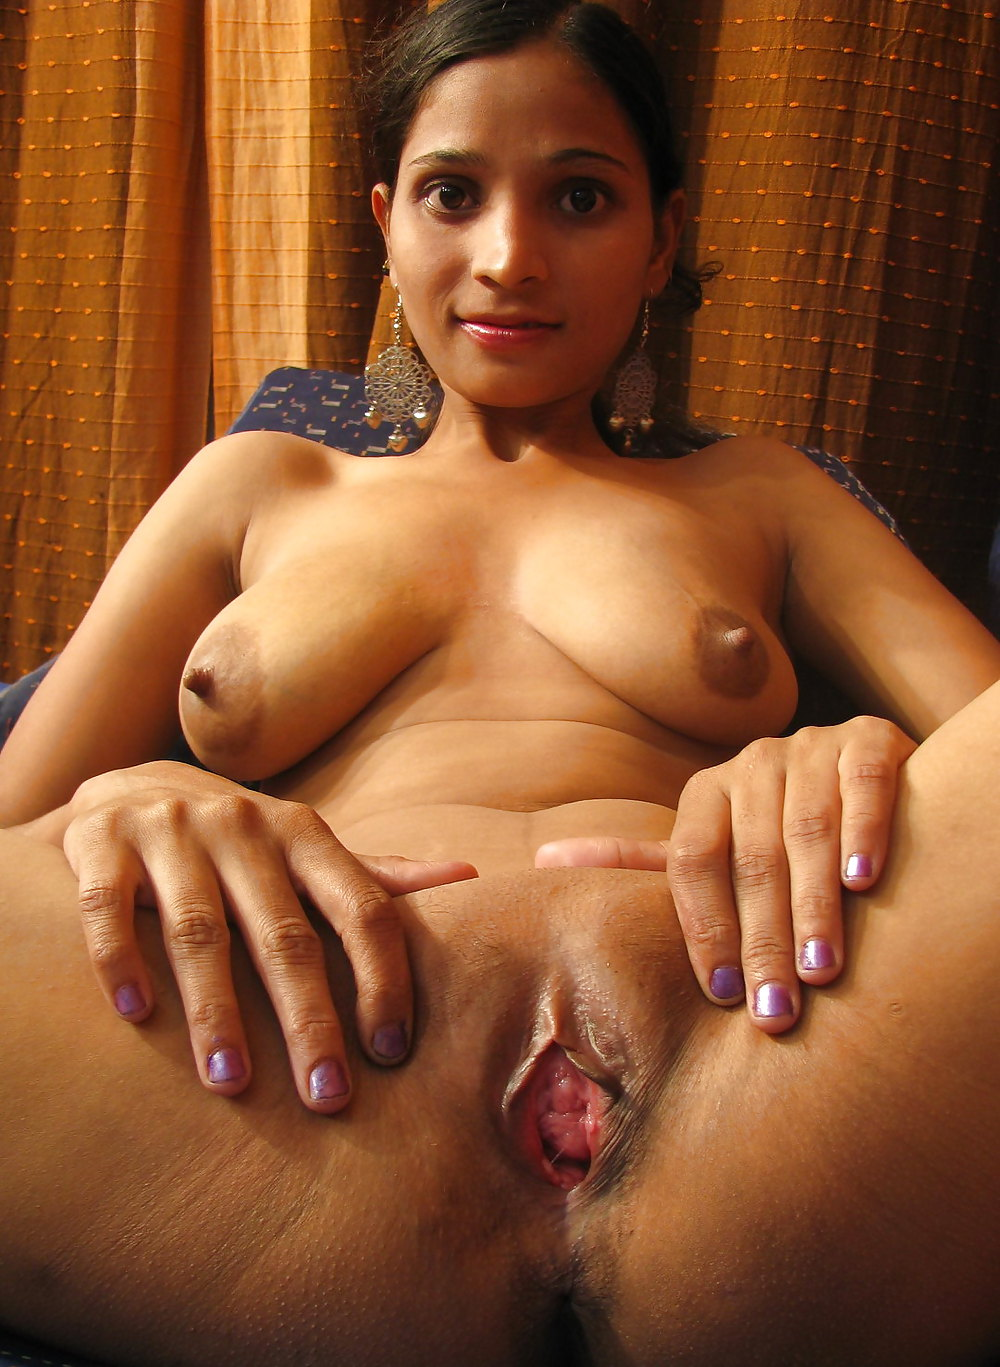 South indian woman pussy, big hunter fuck her tranny